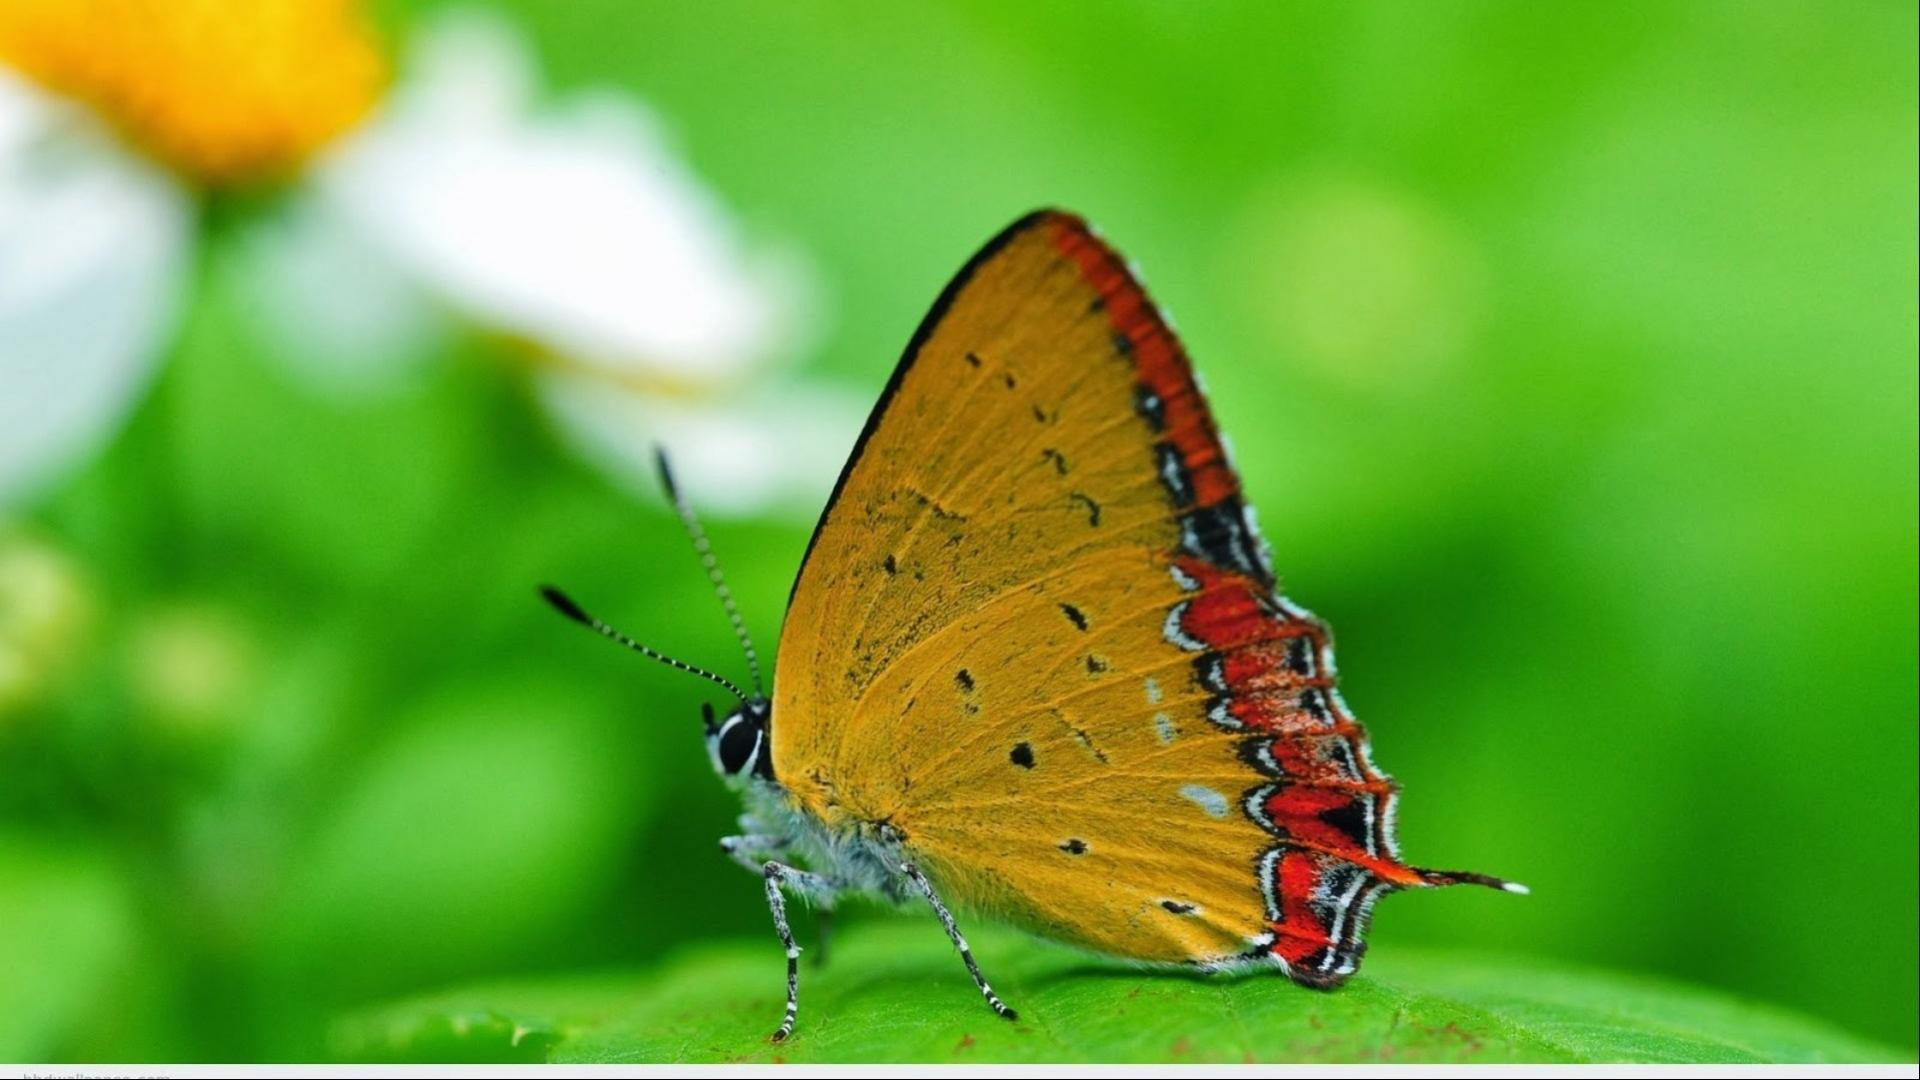 Full HD Nature Images 1080p Desktop With Macro Photo Of